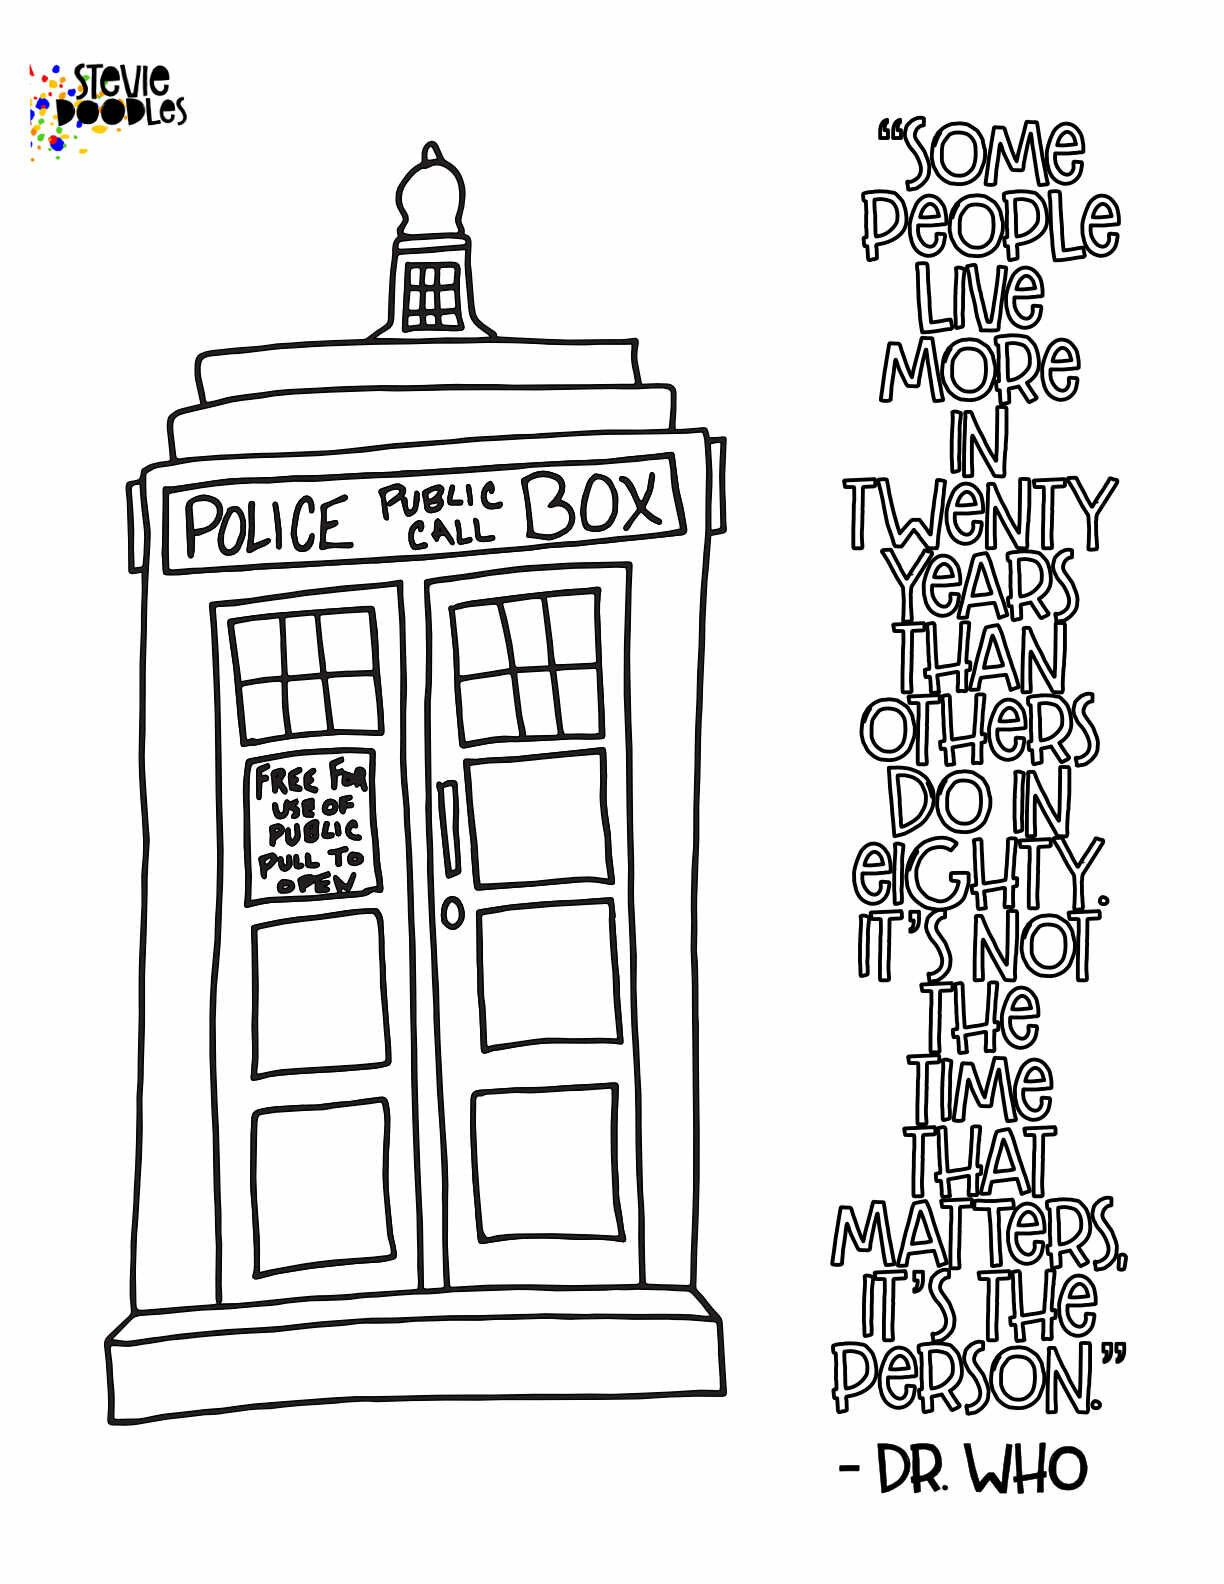 tardis colouring pages tardis with images coloring pages coloring books colouring pages tardis